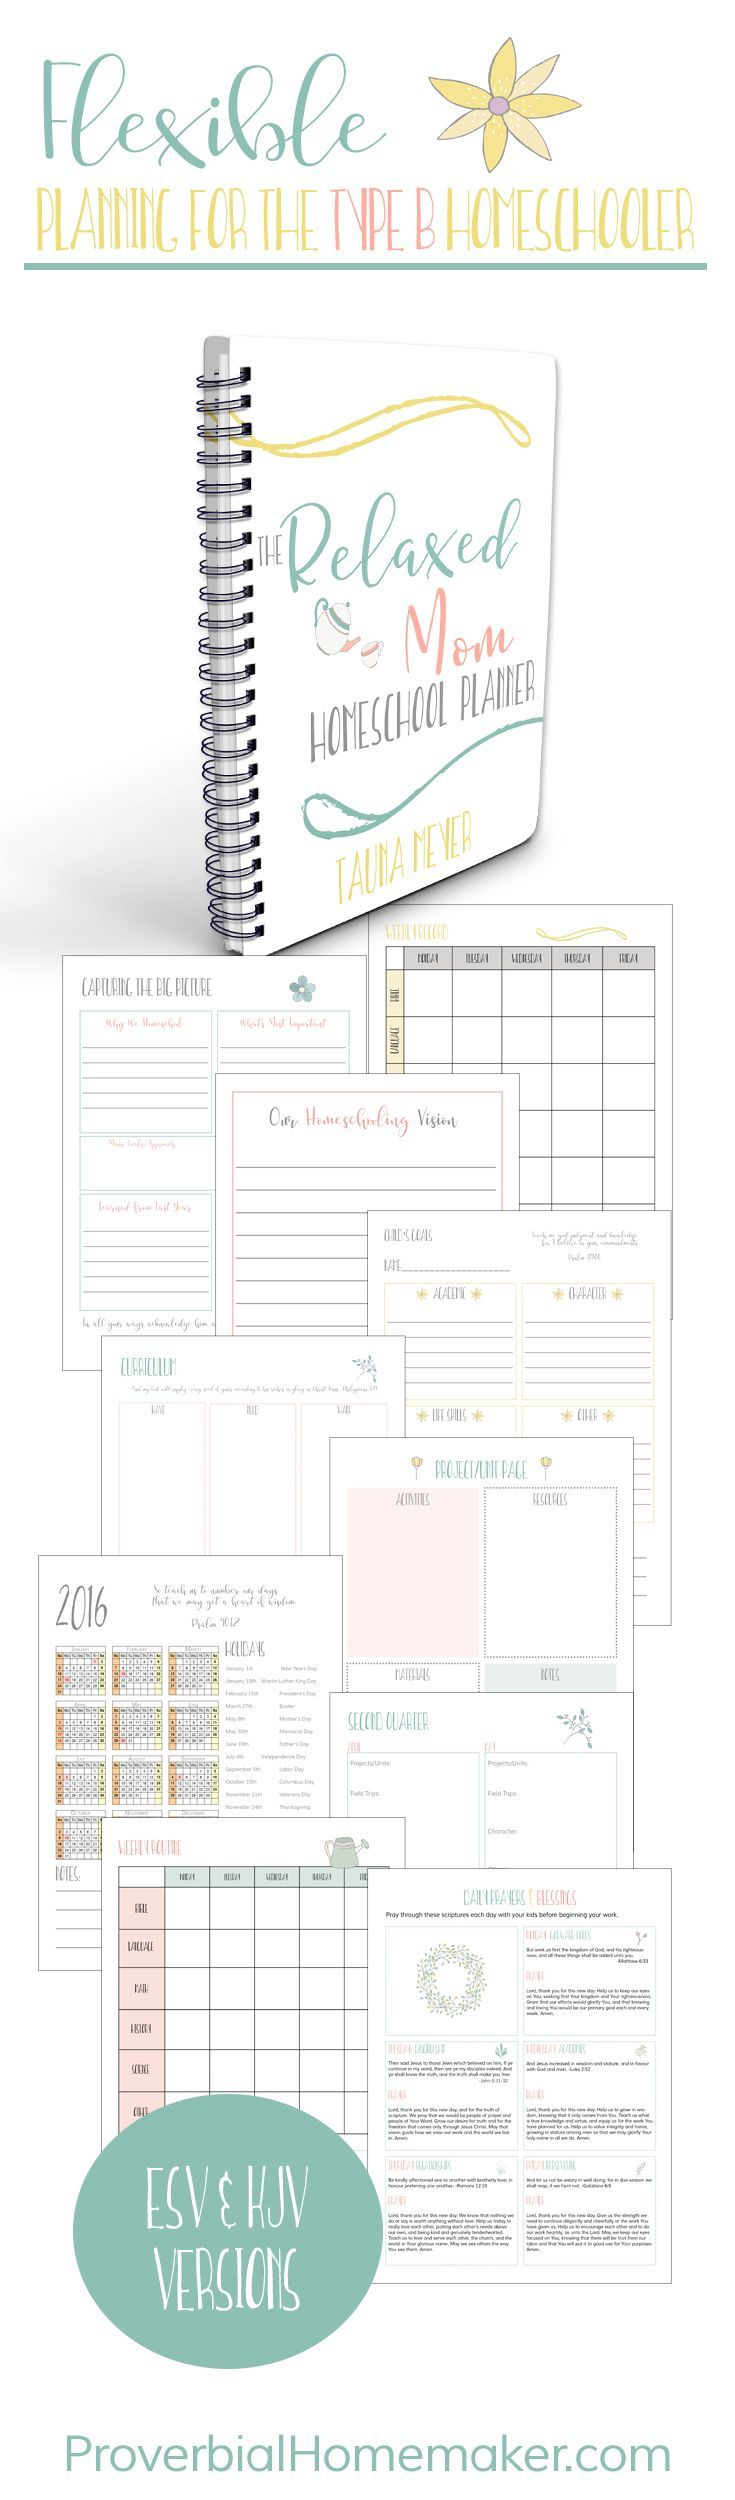 Looking for a routine-based way to plan your homeschool? Tired of the empty checkboxes and half-completed lesson plans? This planner and eCourse is just what you need for a more restful and productive homeschool year!